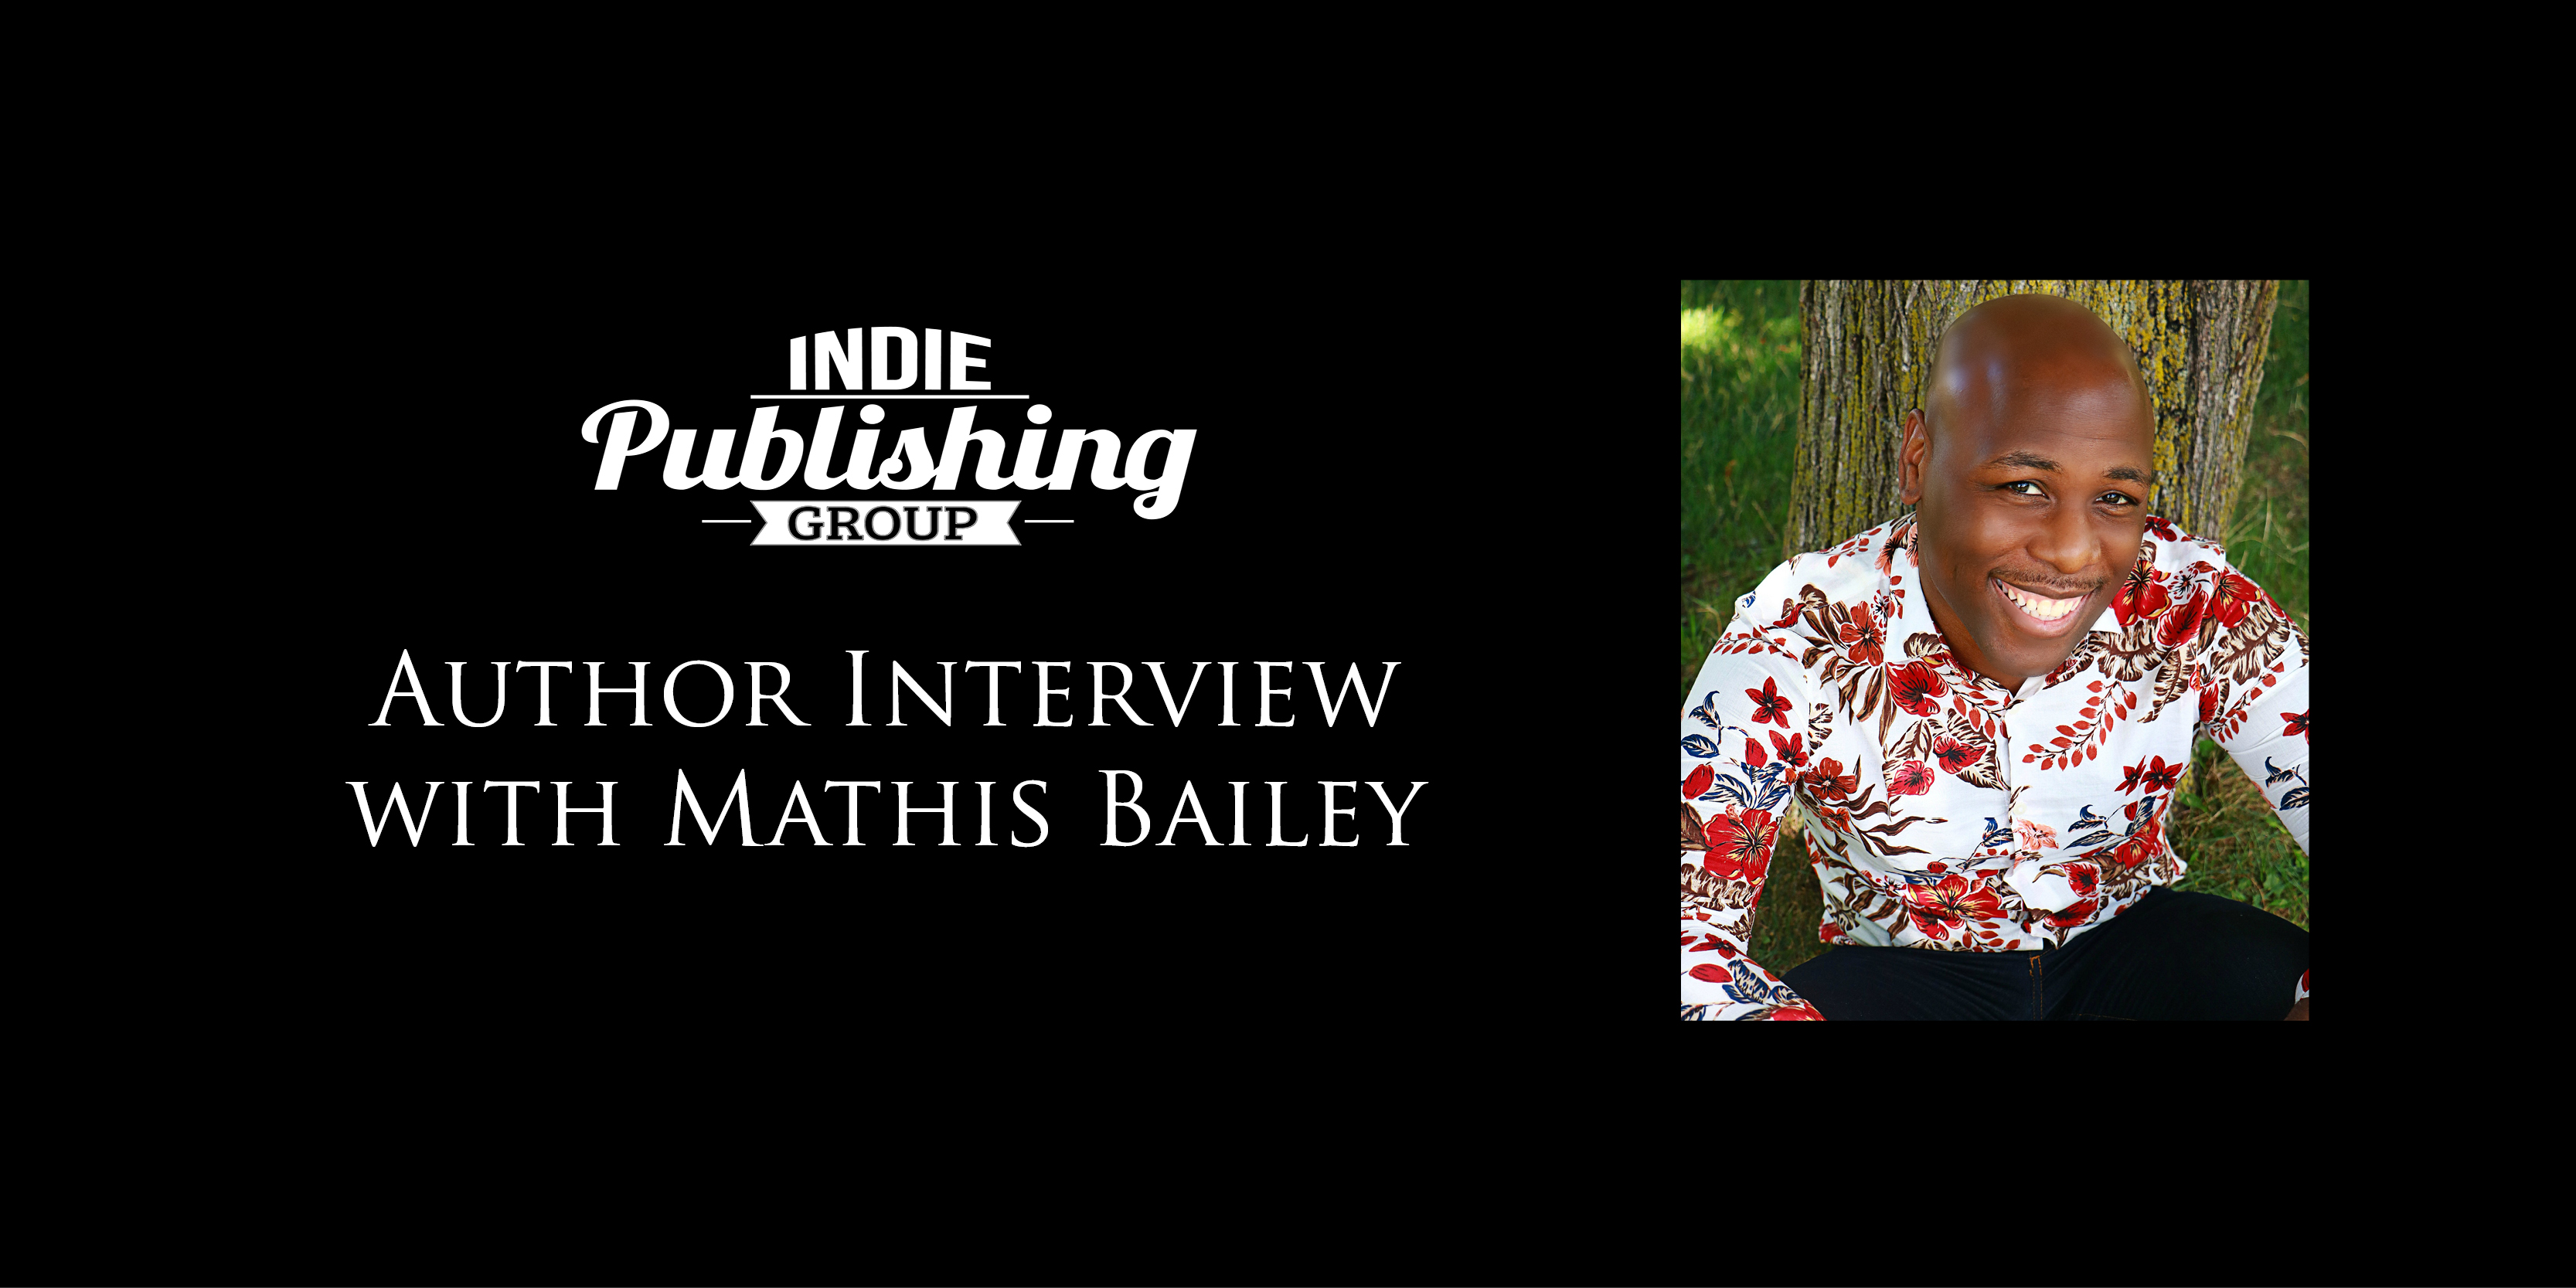 Author Interview with Mathis Bailey